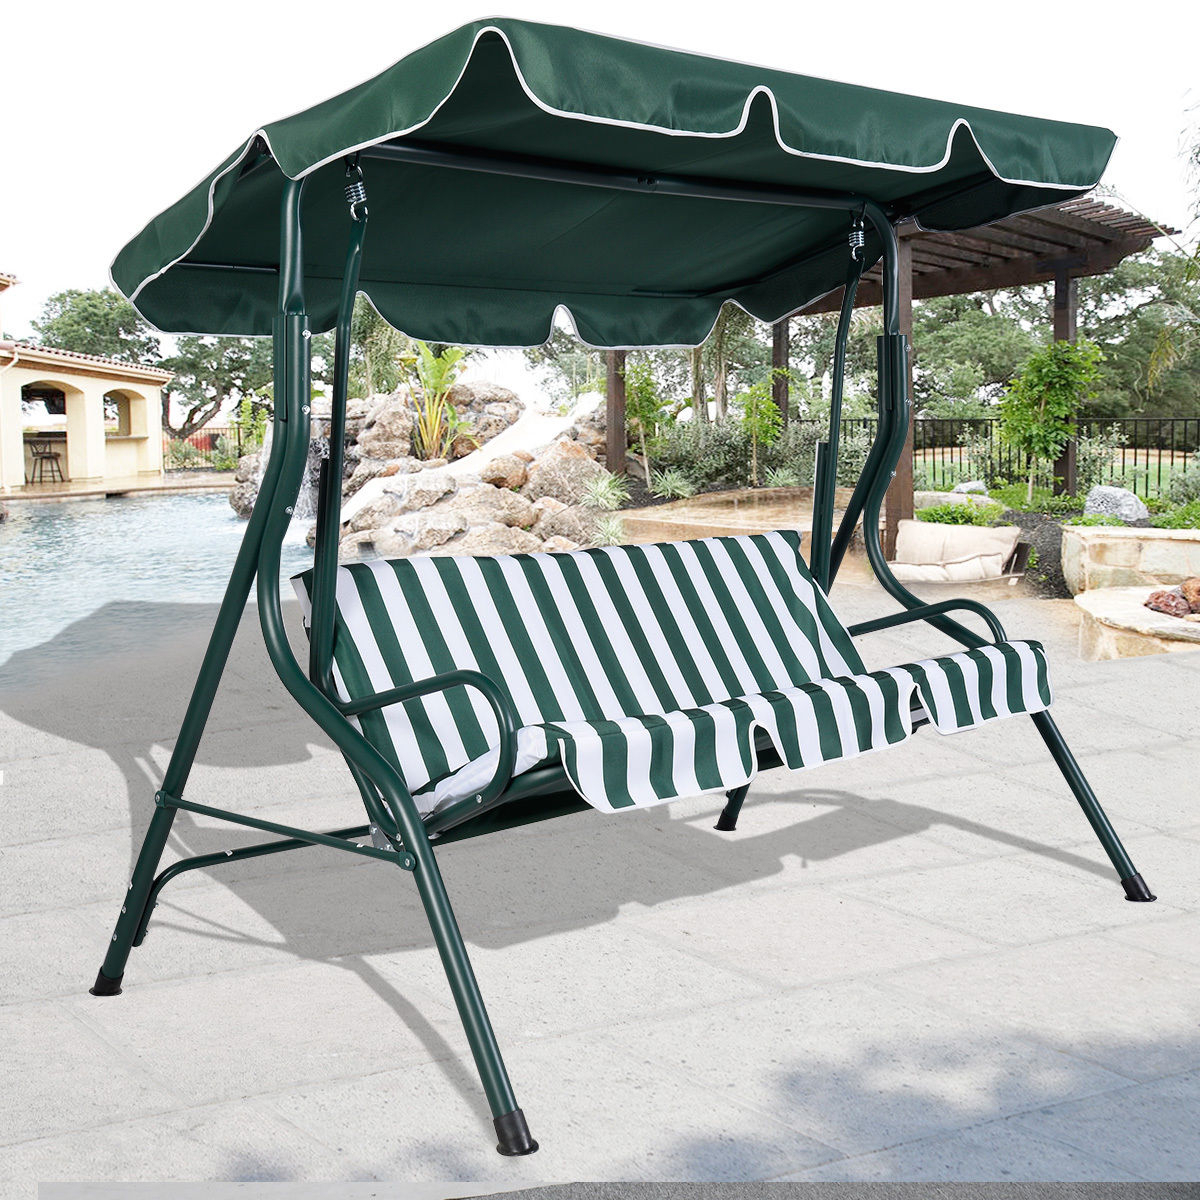 Swing Chair Brown 3 Person Patio Canopy Swing Sling Seating Regarding 3 Person Brown Steel Outdoor Swings (View 16 of 25)